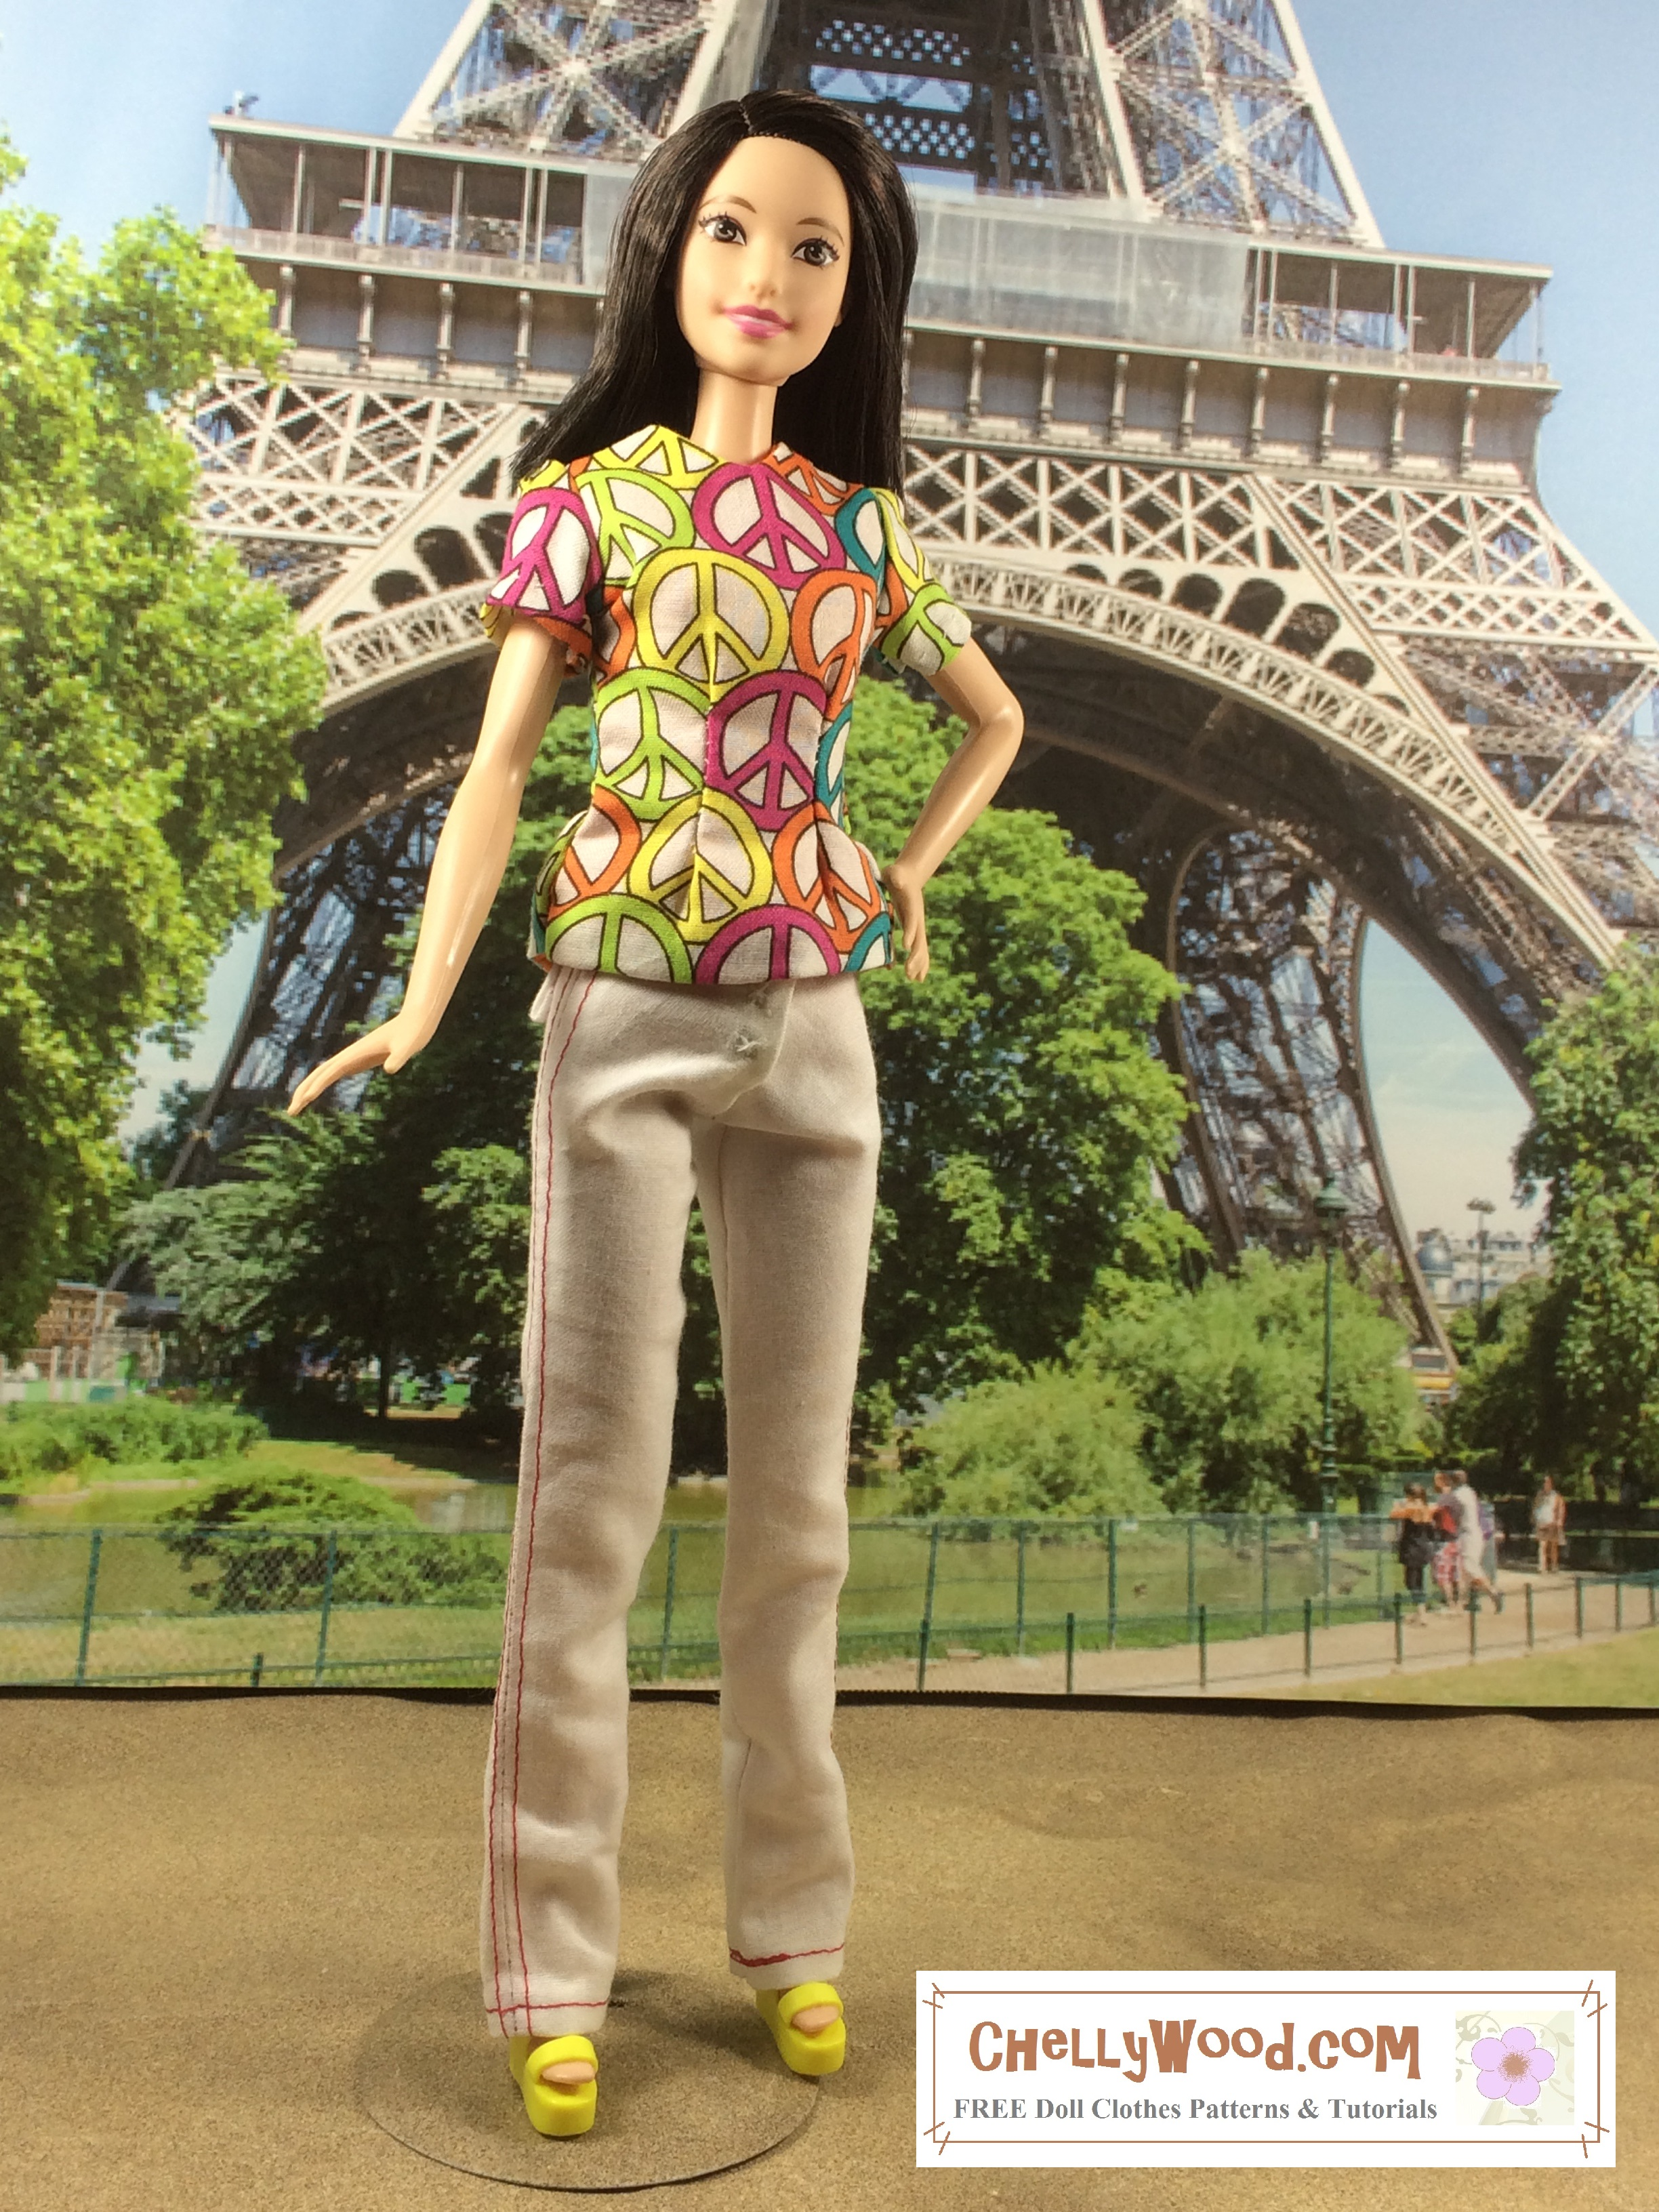 Free printable sewing patterns for mattels fashionista tall published at 2448 3264 in sew attire for tallbarbie wfree pattern jeuxipadfo Gallery